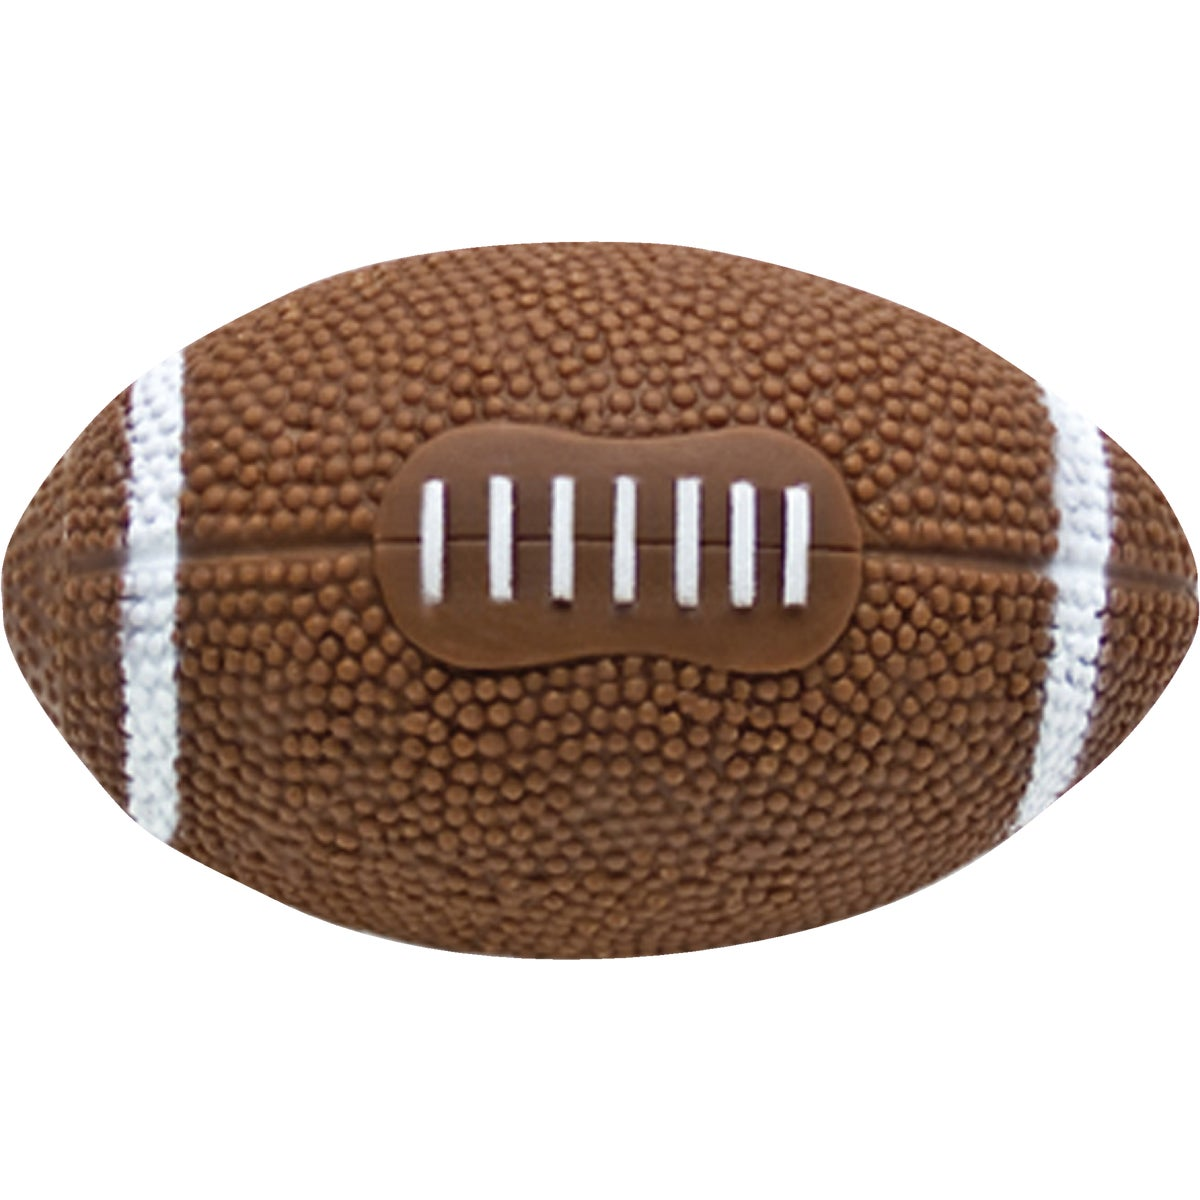 FOOTBALL DOG TOY - 20037 by Westminster Pet